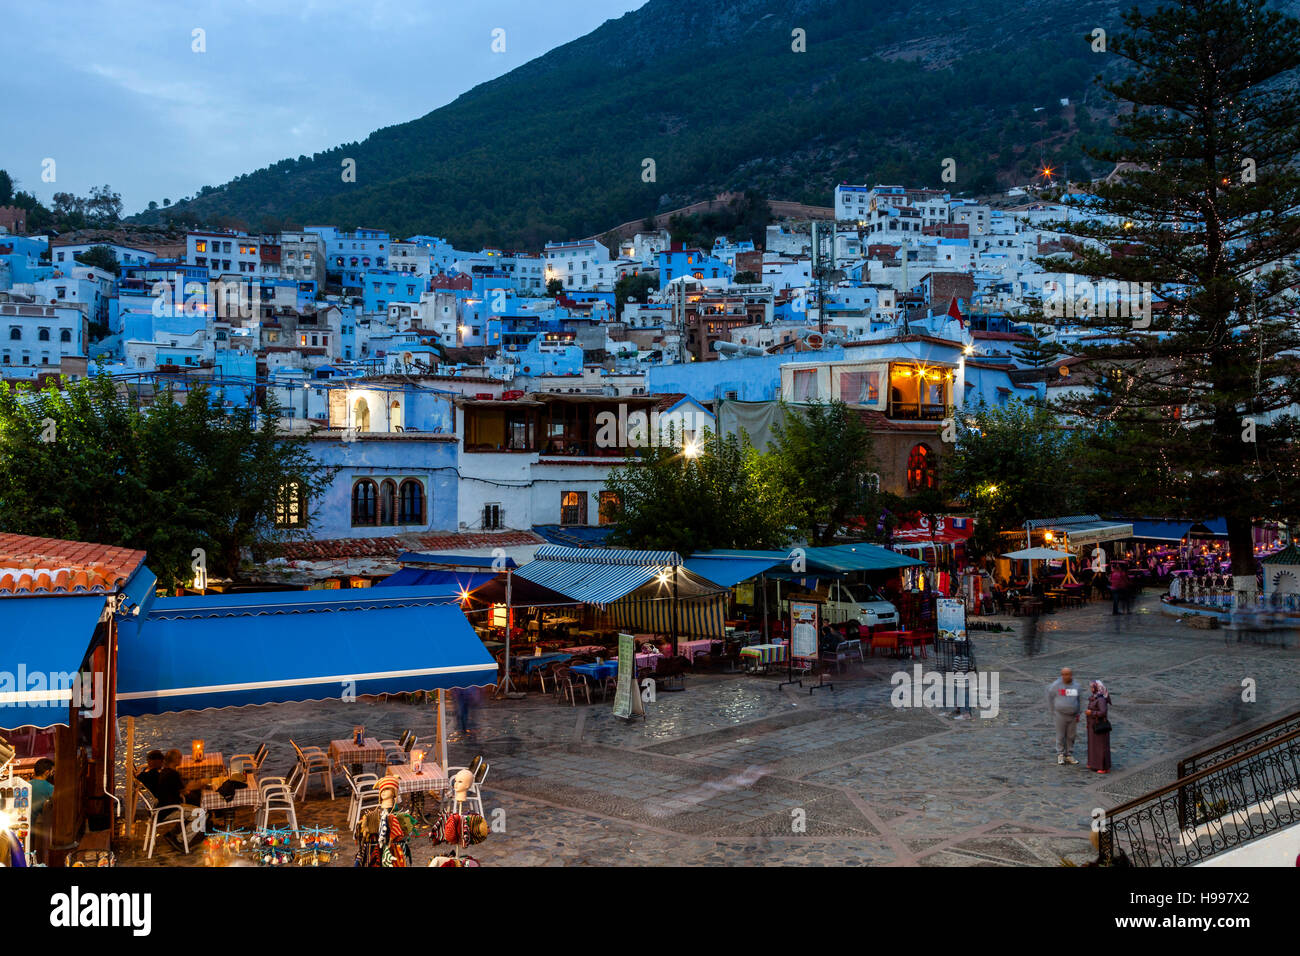 Cafes and Restaurants In Plaza Uta el-Hammam, Chefchaouen, Morocco